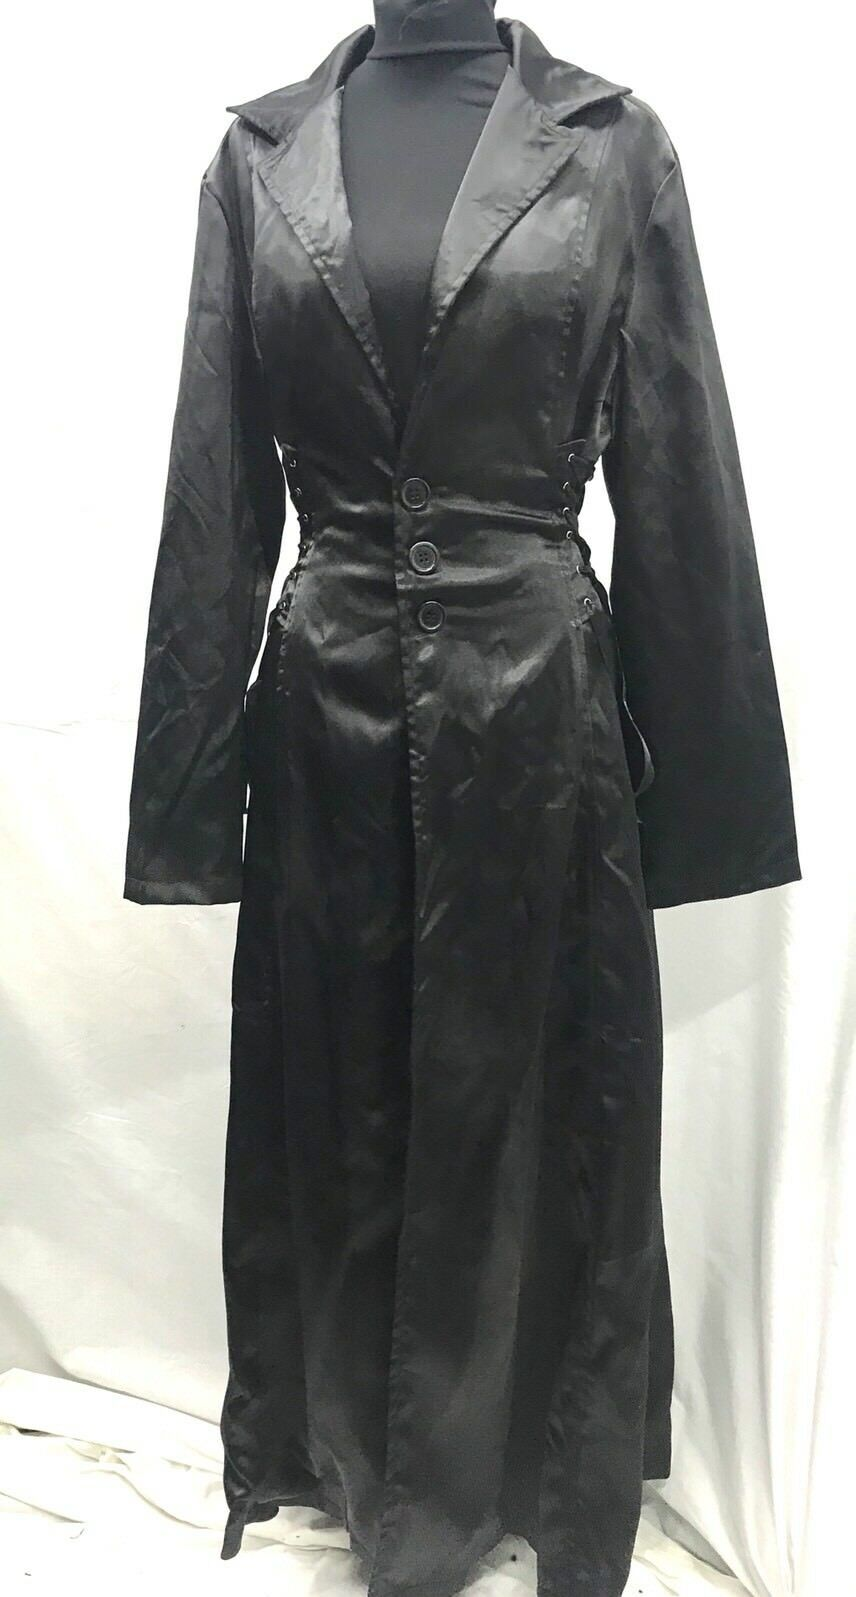 Raven Gothic Black Long Satin Dress Coat With Waist Sides Corseted Size L